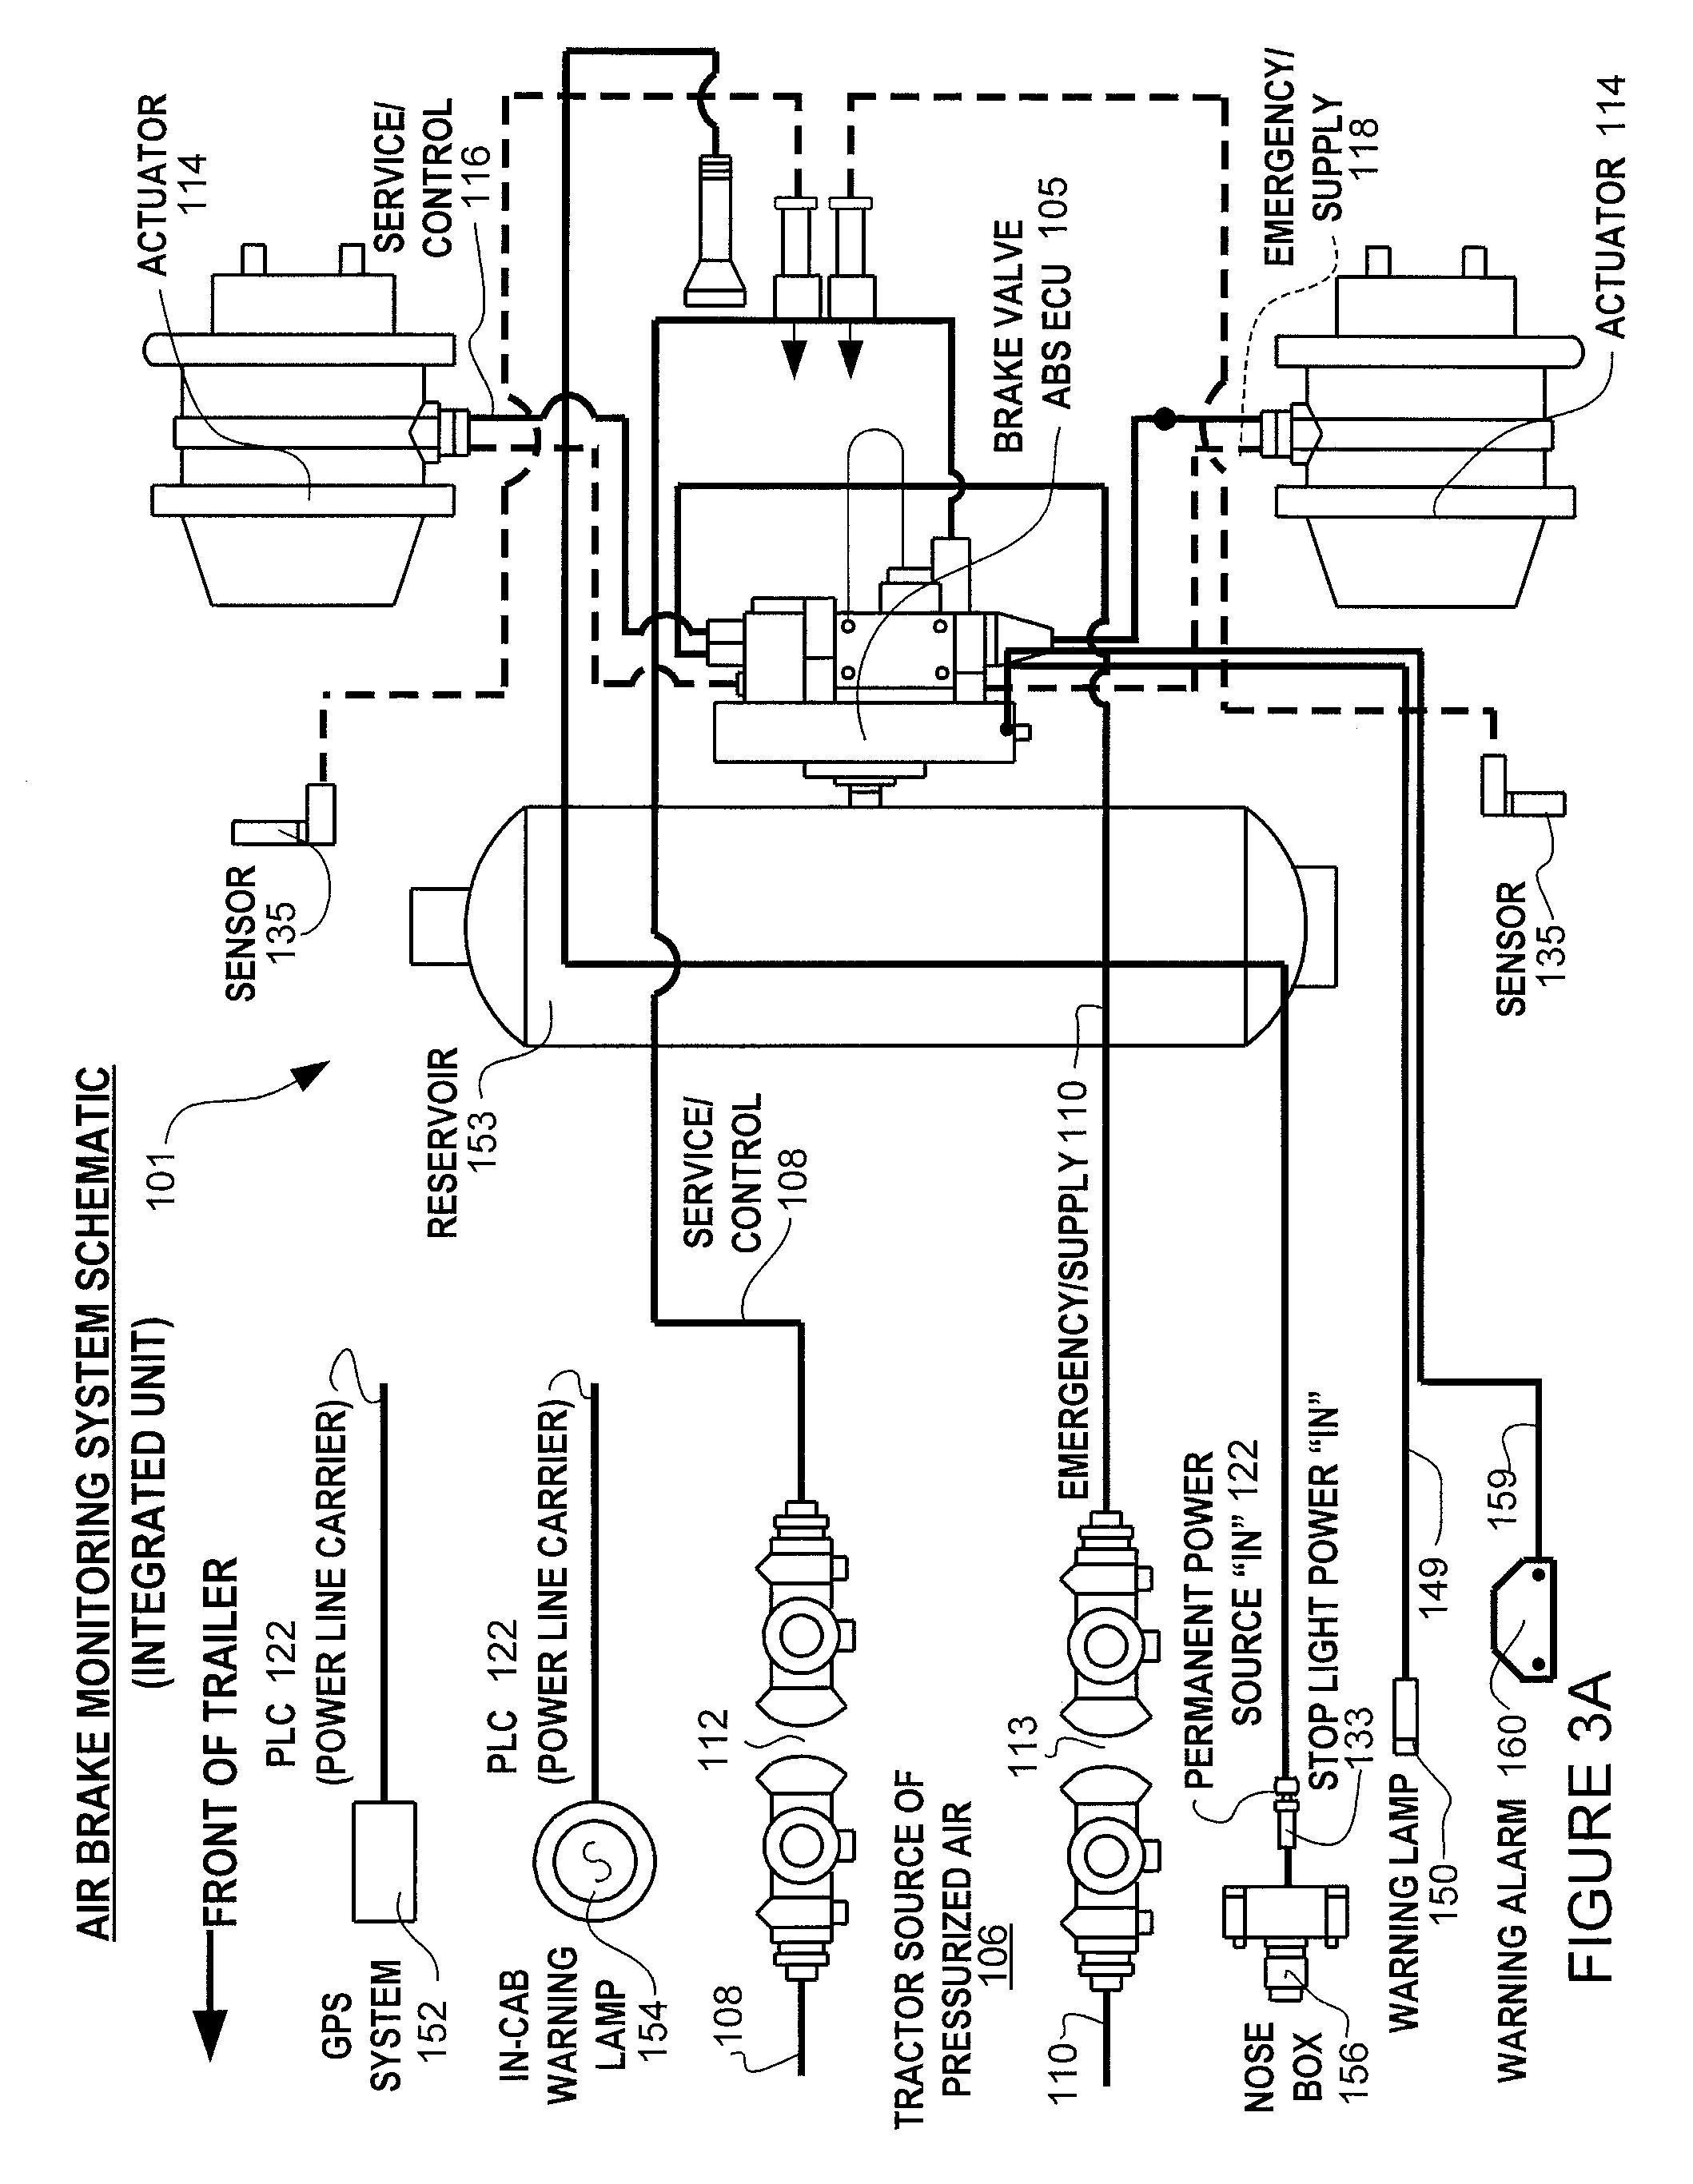 7 Way Trailer Plug Wiring Diagram For Suburban Seven Way Trailer Wiring Diagram Wiring